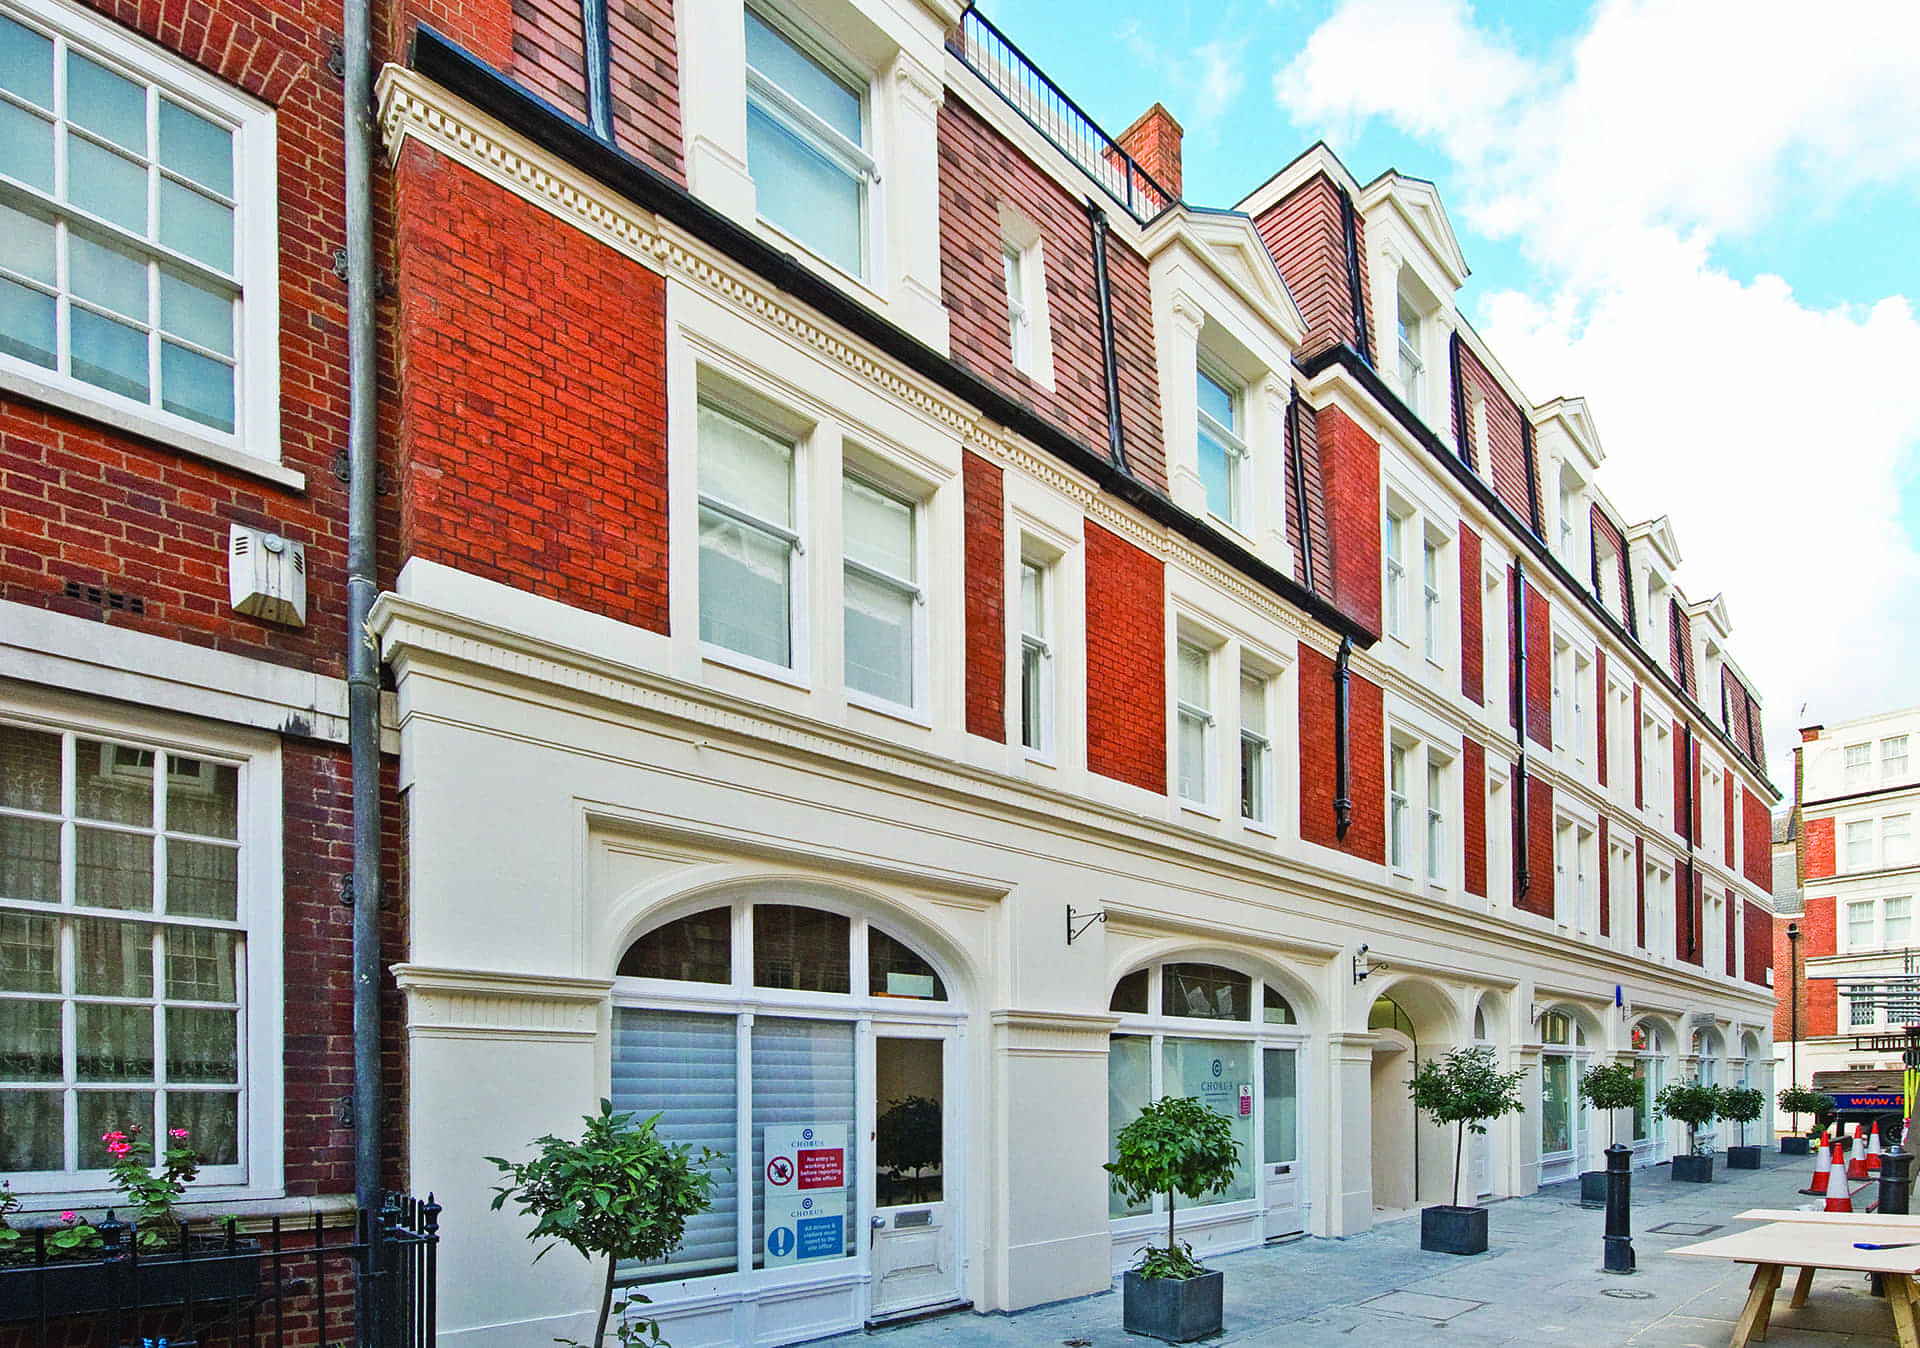 image of the red brick-layered mayfair building in London with arcade shaped windows